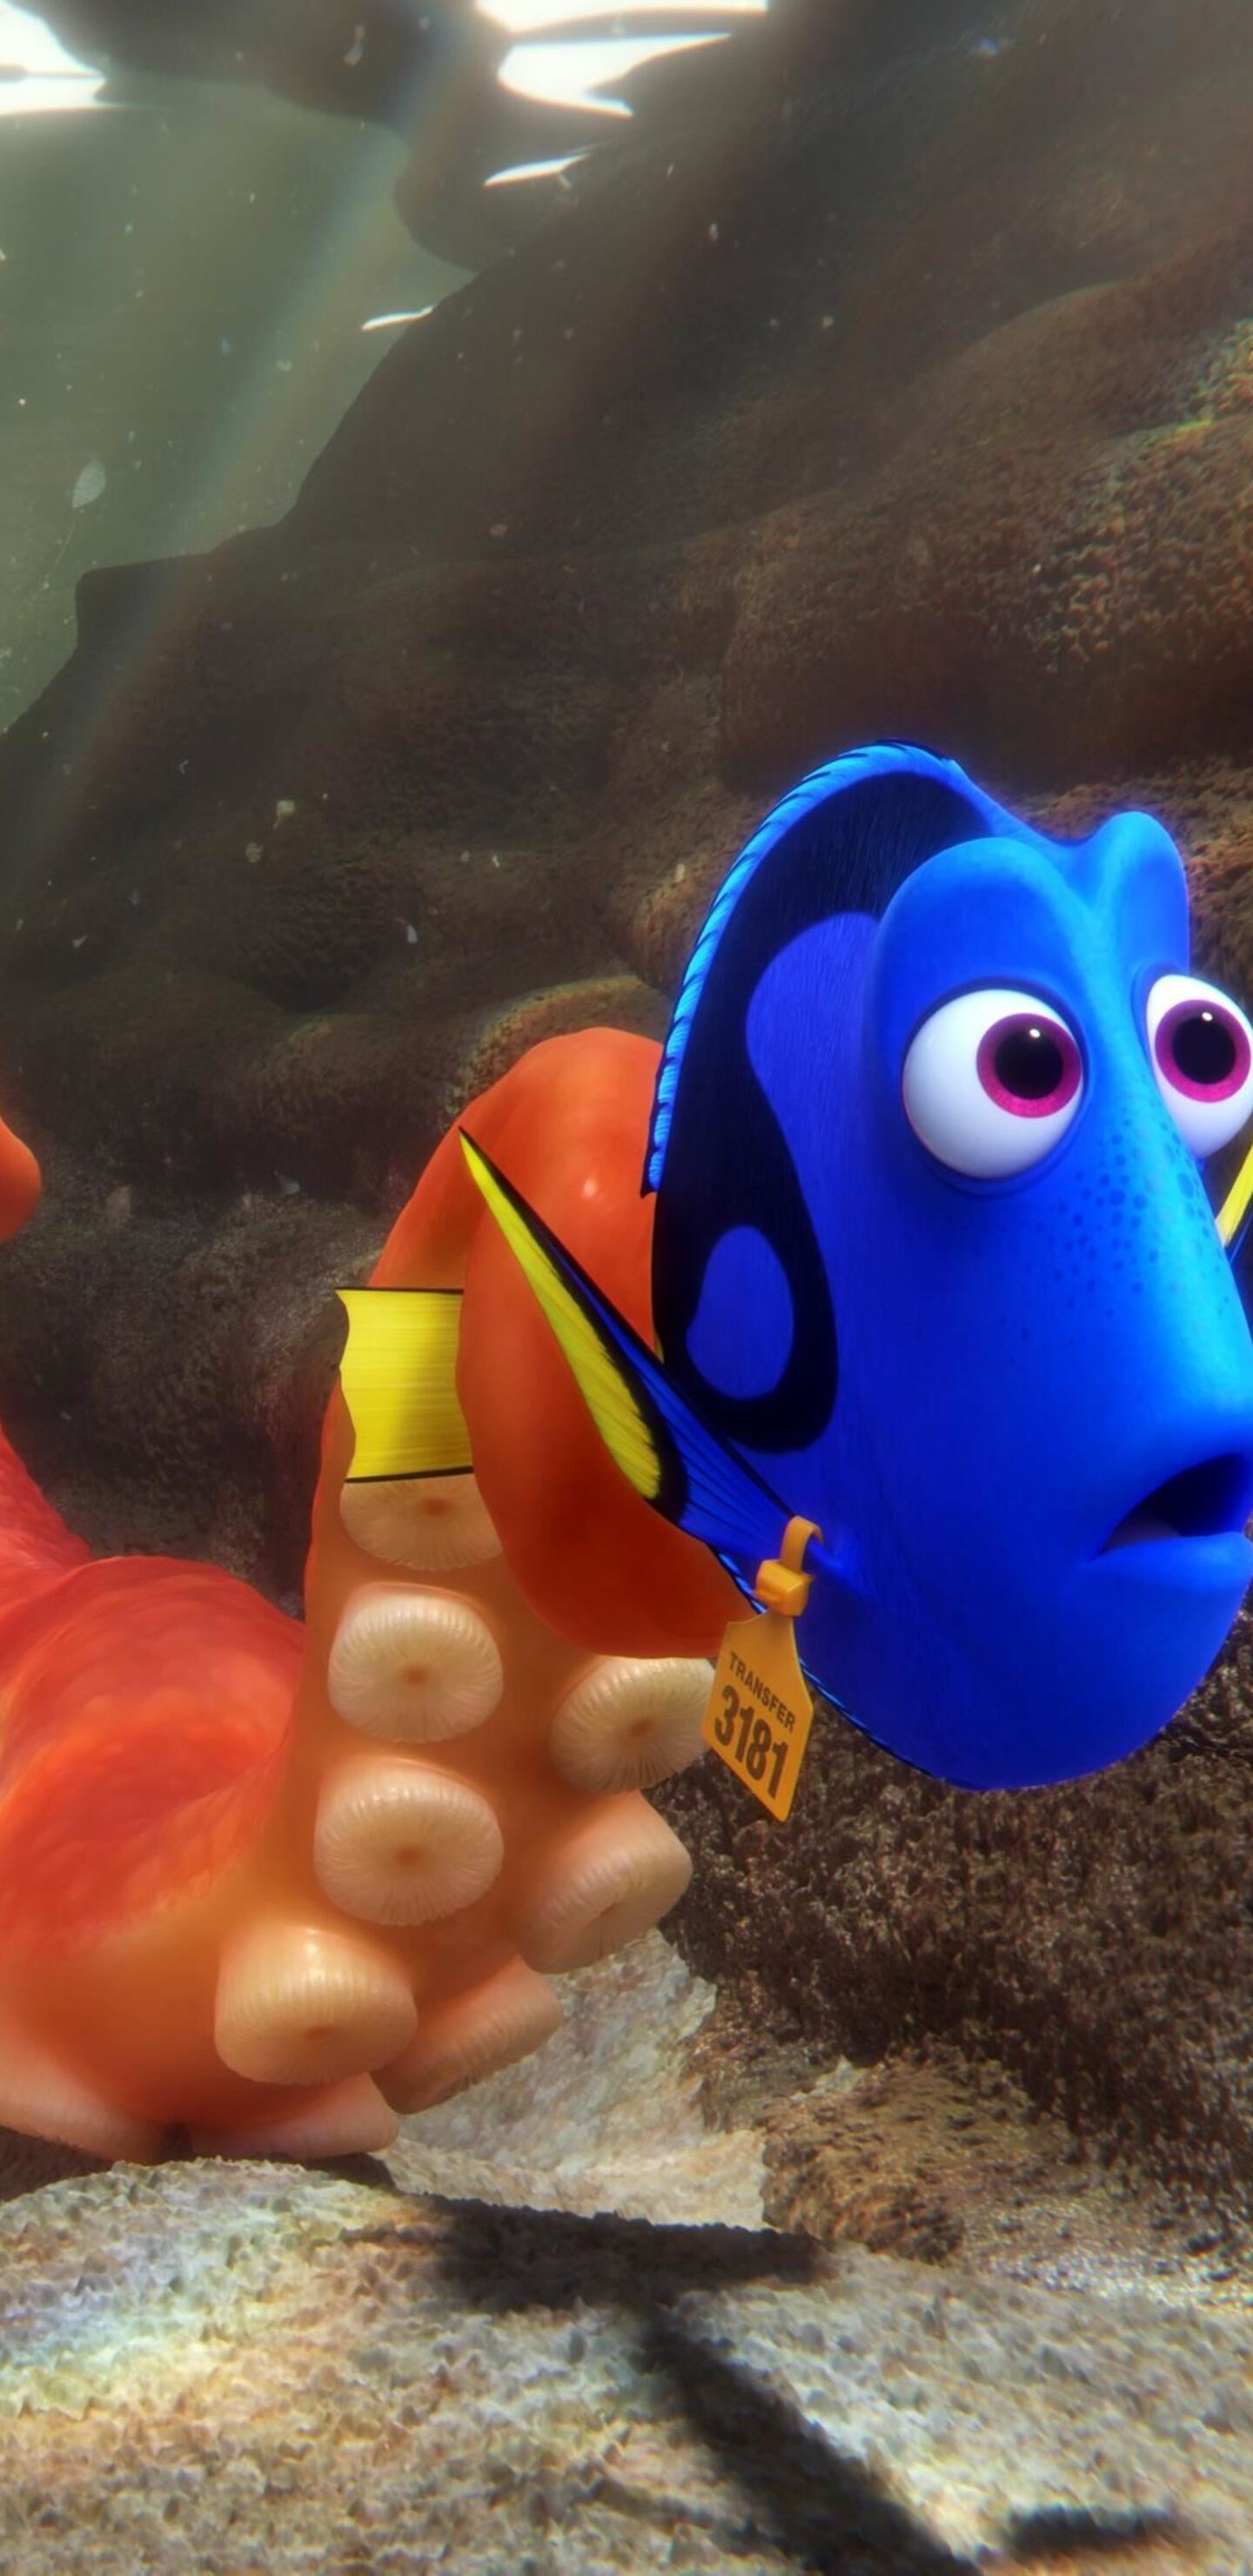 1440x2960 Finding Dory 2016 Samsung Galaxy Note 9 8 S9 S8 S8 Qhd Hd 4k Wallpapers Images Backgrounds Photos And Pictures